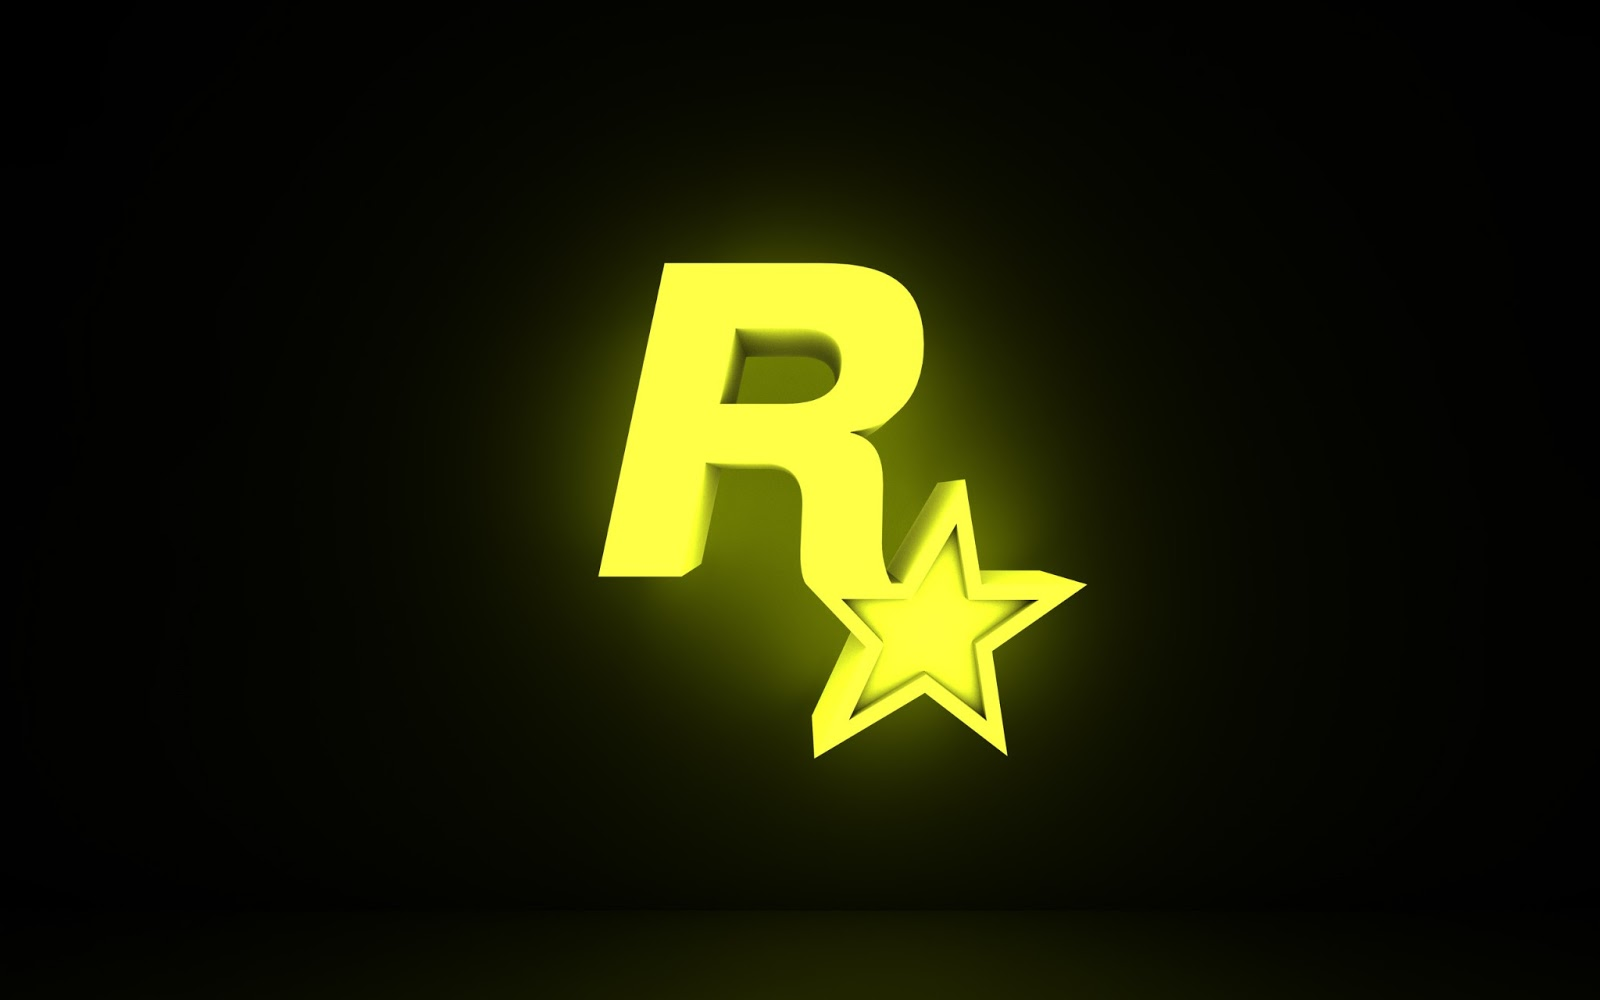 rockstar wallpapers rockstar wallpapers rockstar wallpapers rockstar 1600x1000